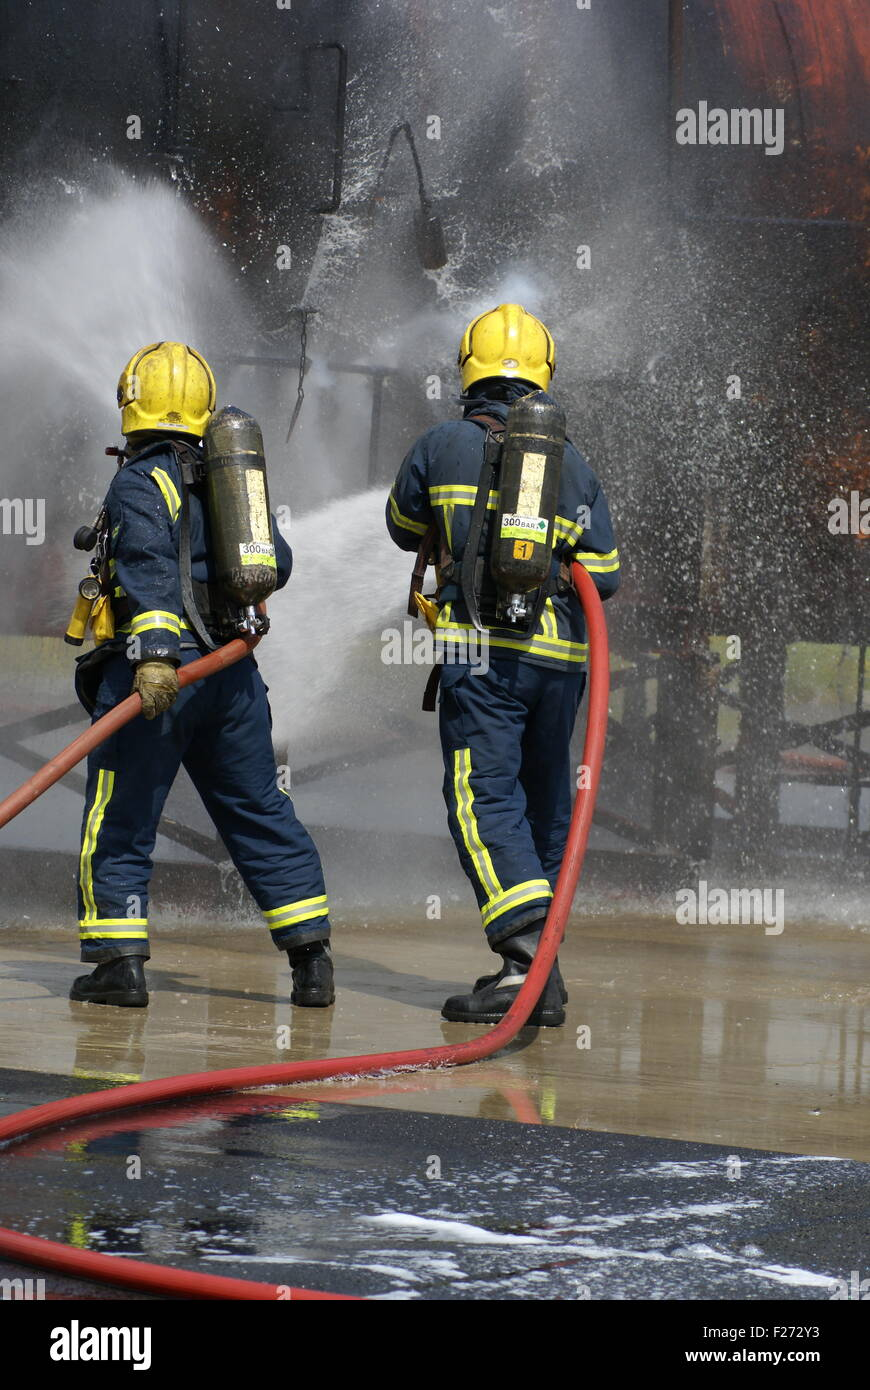 fire-fighters fire fighting with hose - Stock Image